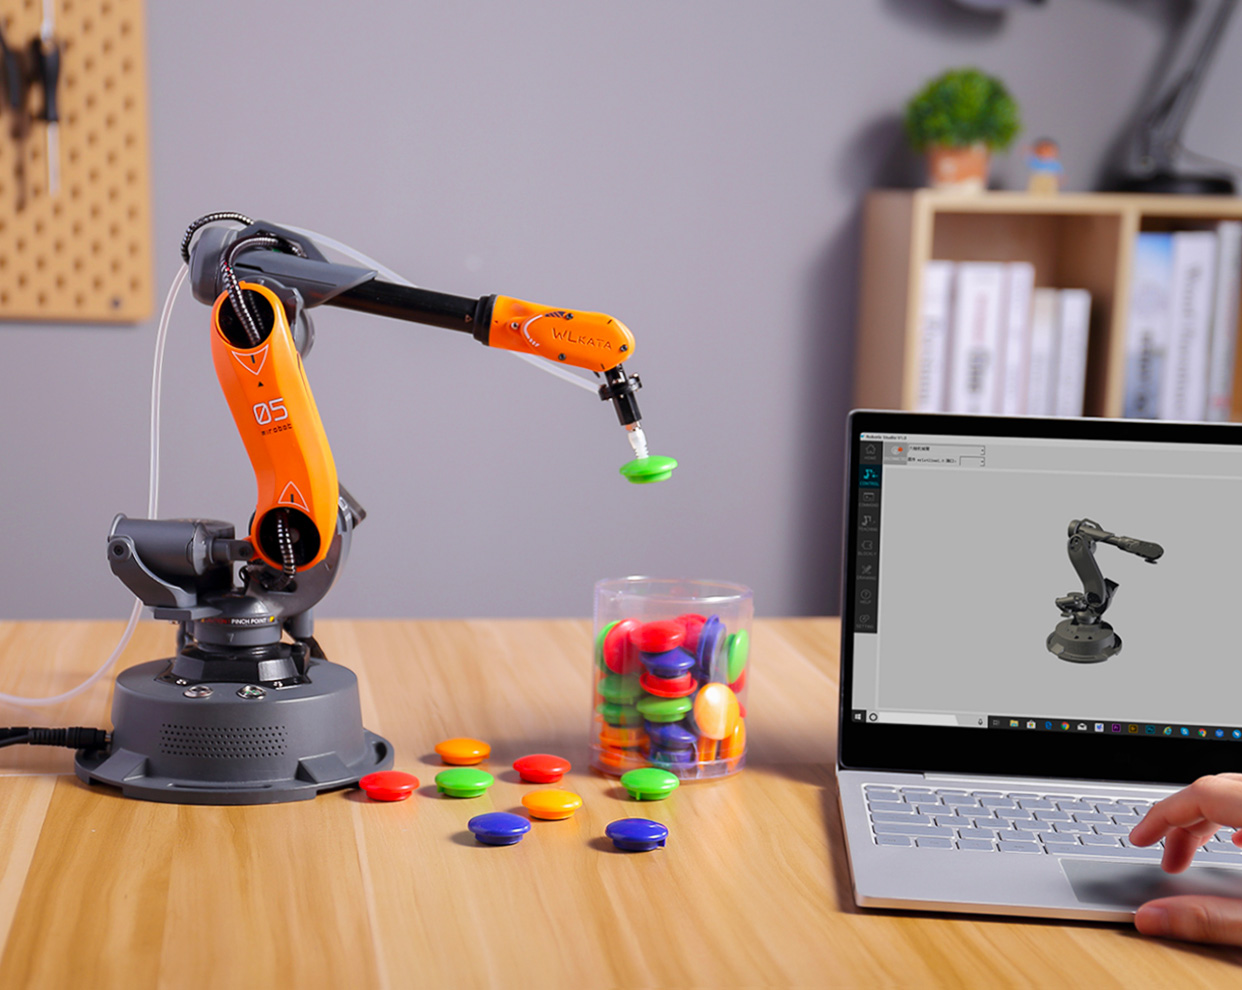 Learn By Doing: The Mirobot Robotic Arm at werd.com